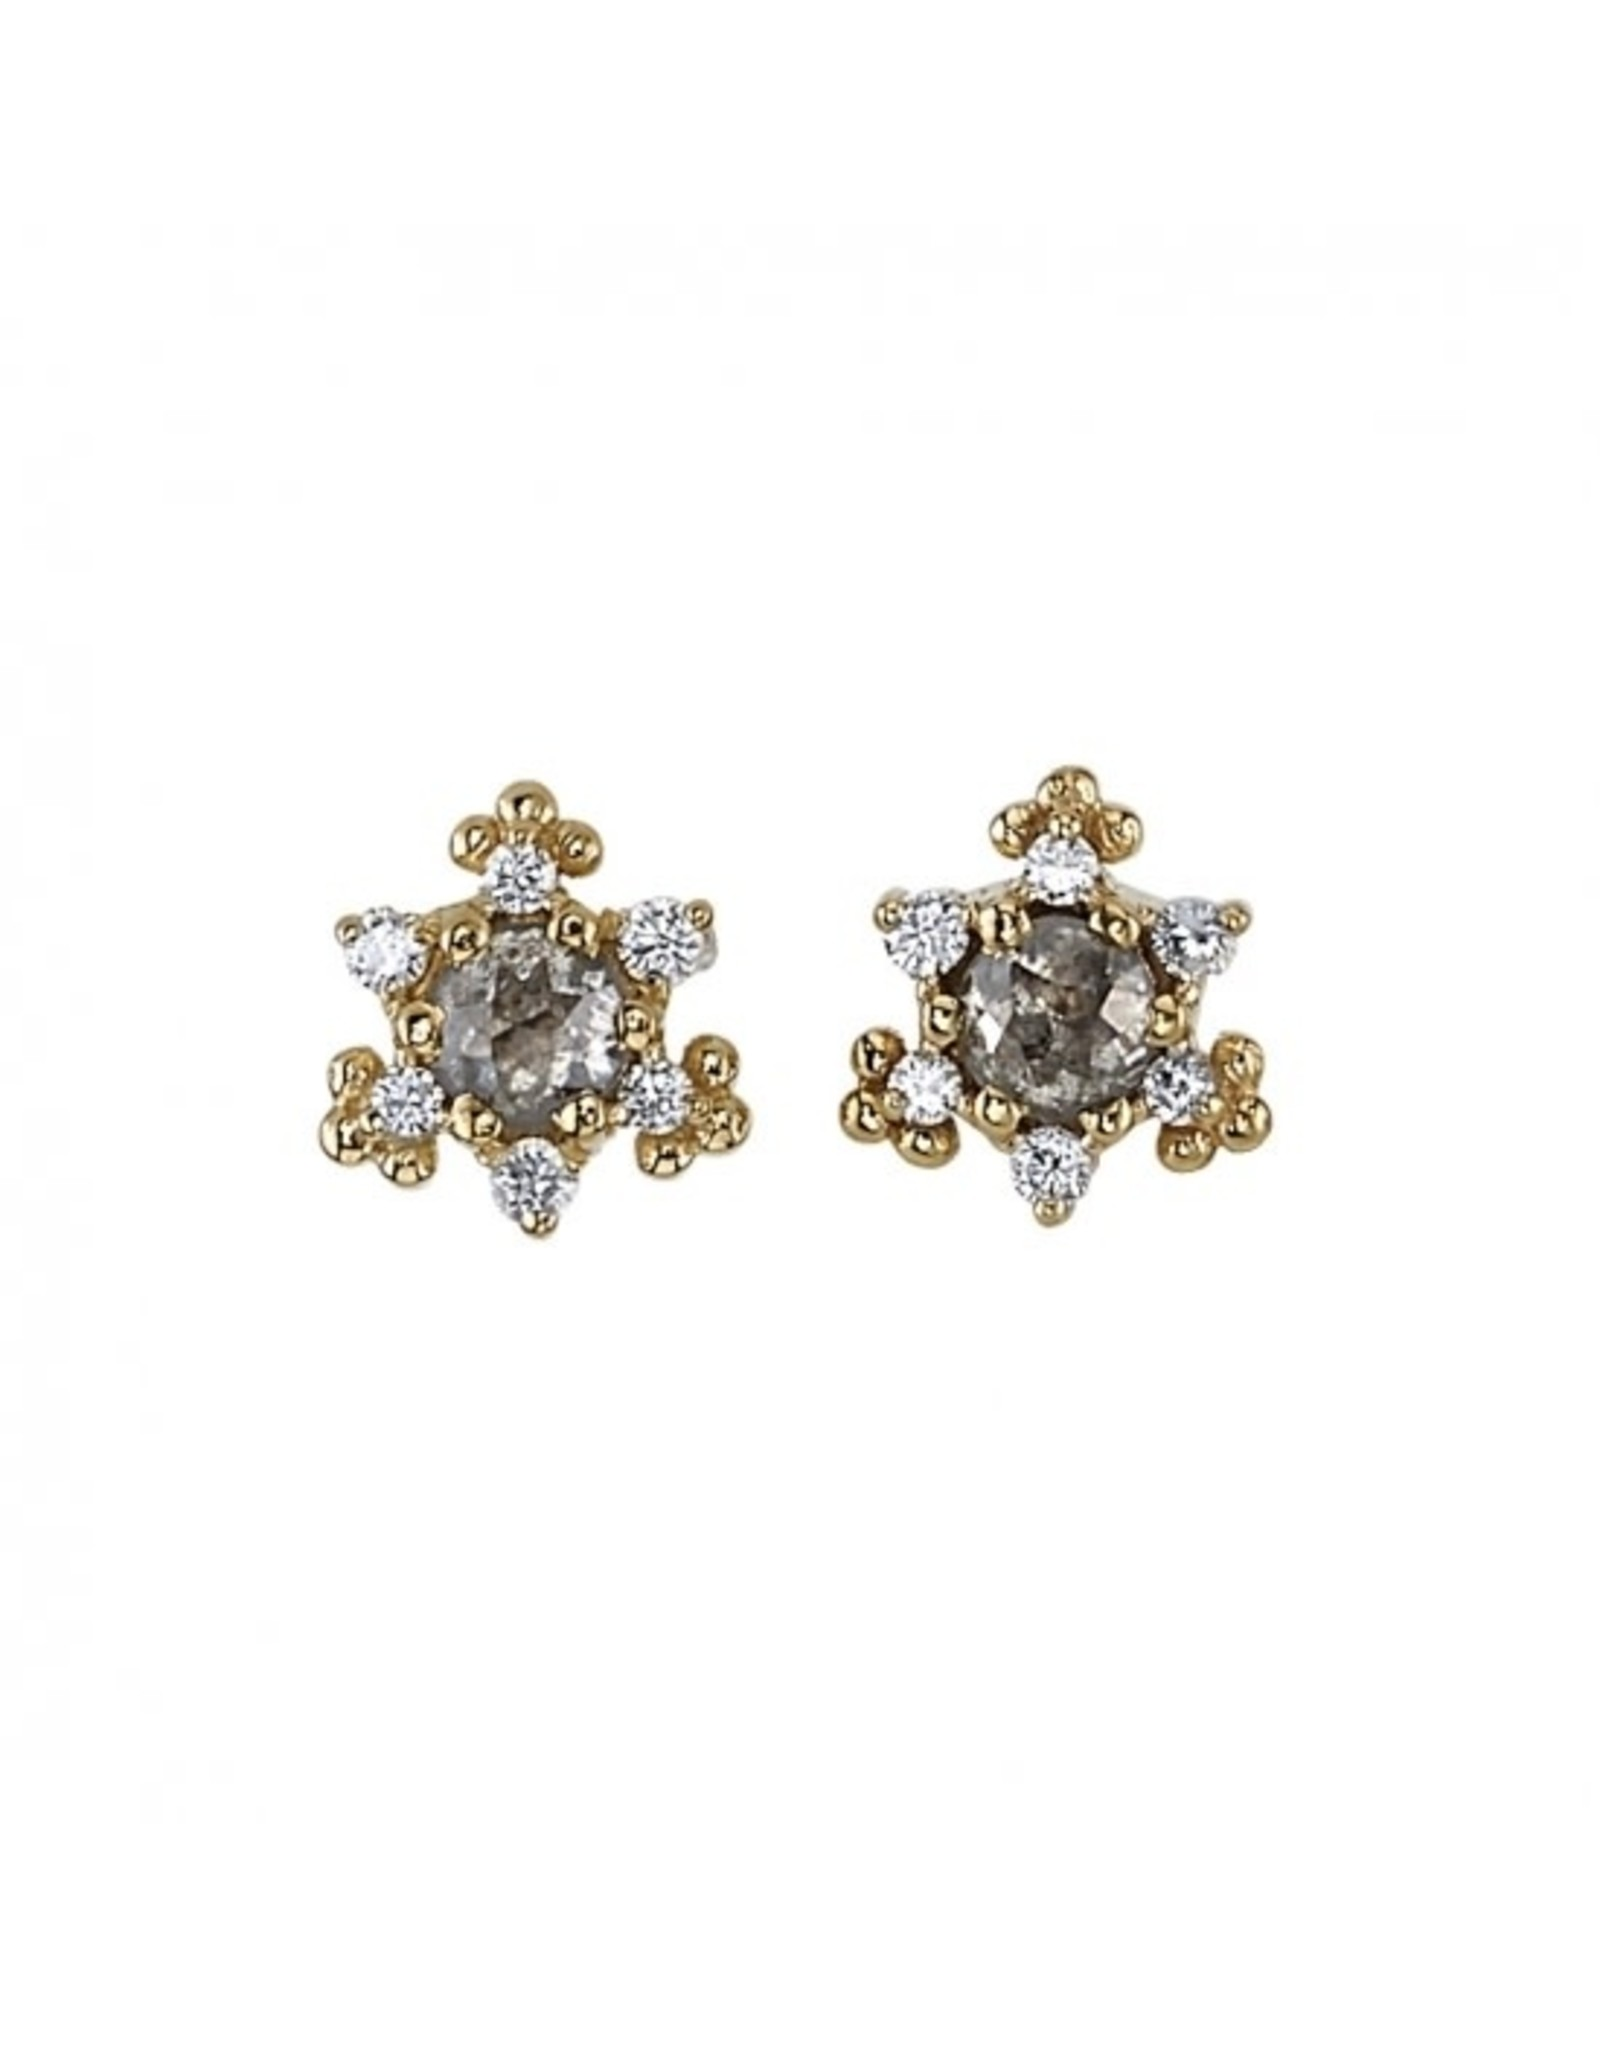 """BVLA BVLA yellow gold """"Bayle"""" threaded end with 1x 3.0 rose cut grey diamond, 3x 1.0 CZ and 3x 1.25 CZ"""